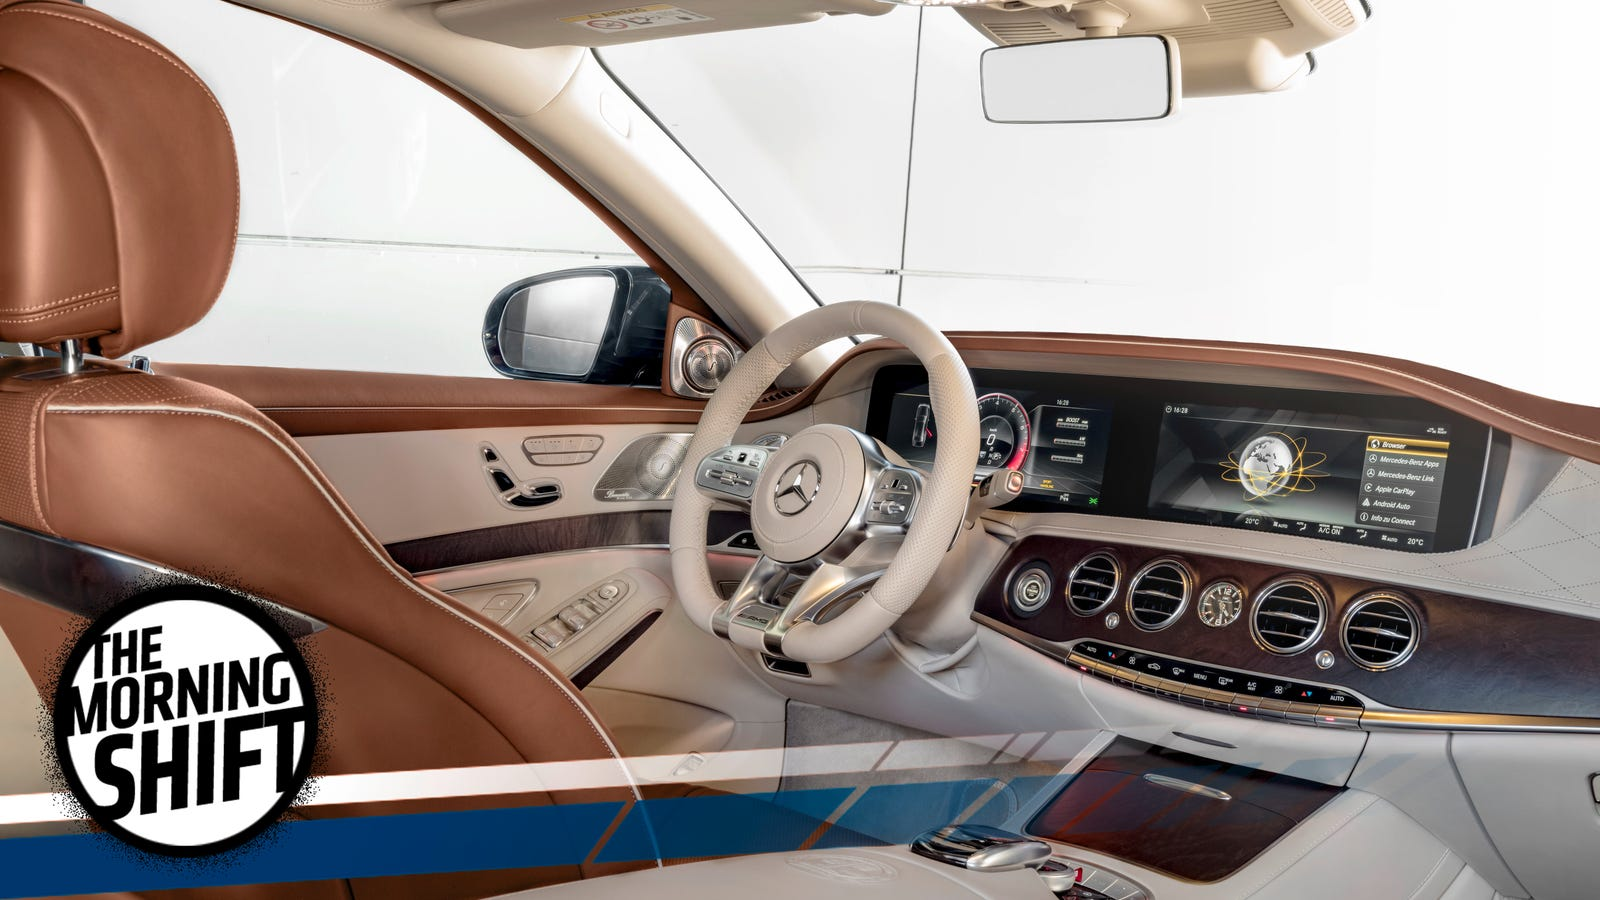 People Just Don't Use Fancy Luxury Car Tech If It's Too Complicated